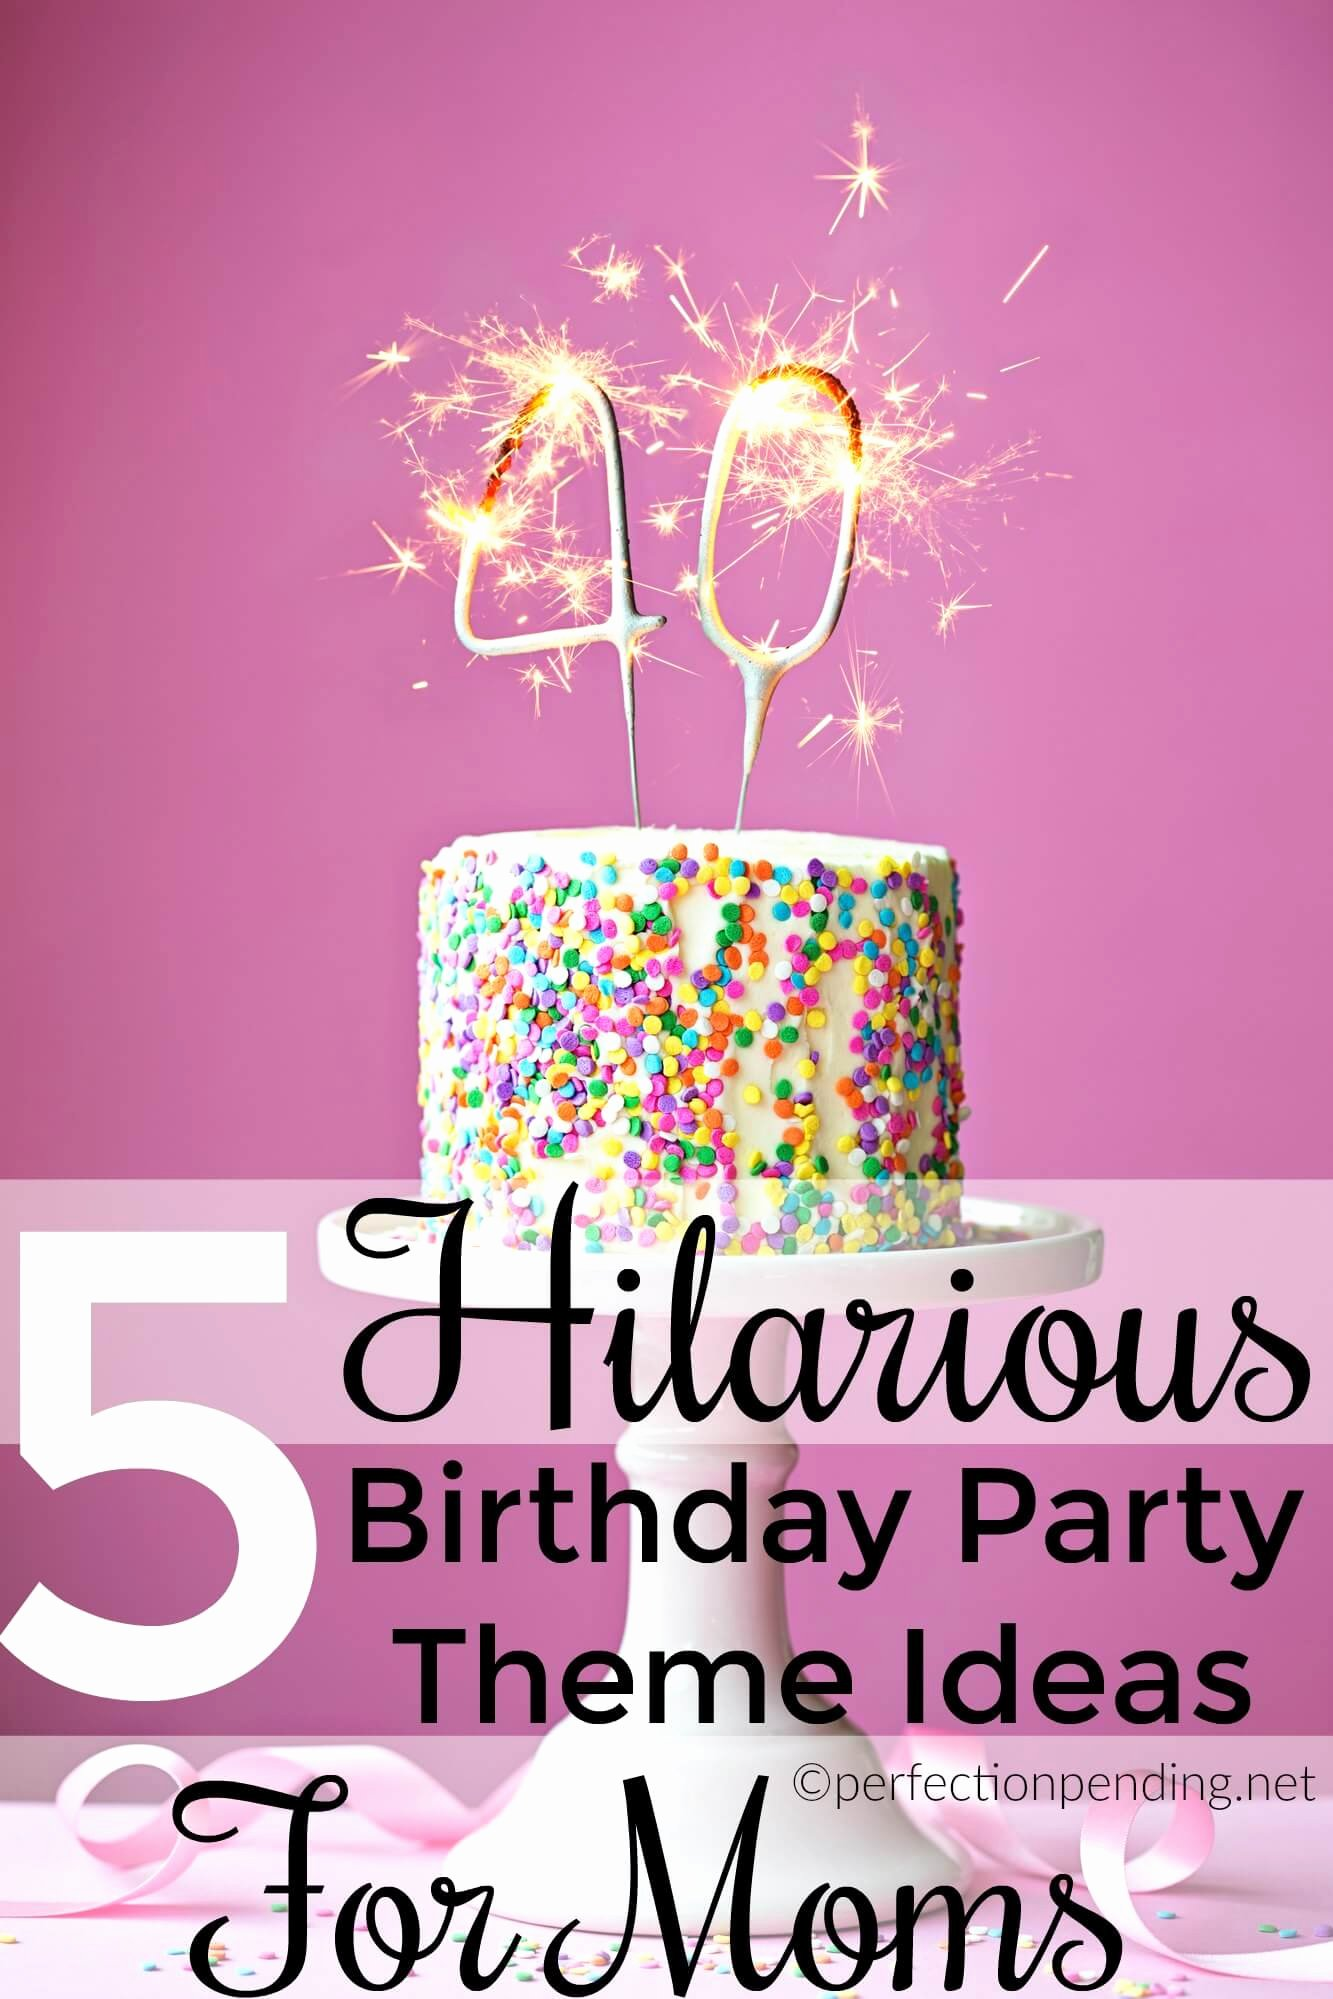 Mom Birthday Decoration Ideas Luxury Five Birthday Party themes Moms totally Want for their Next